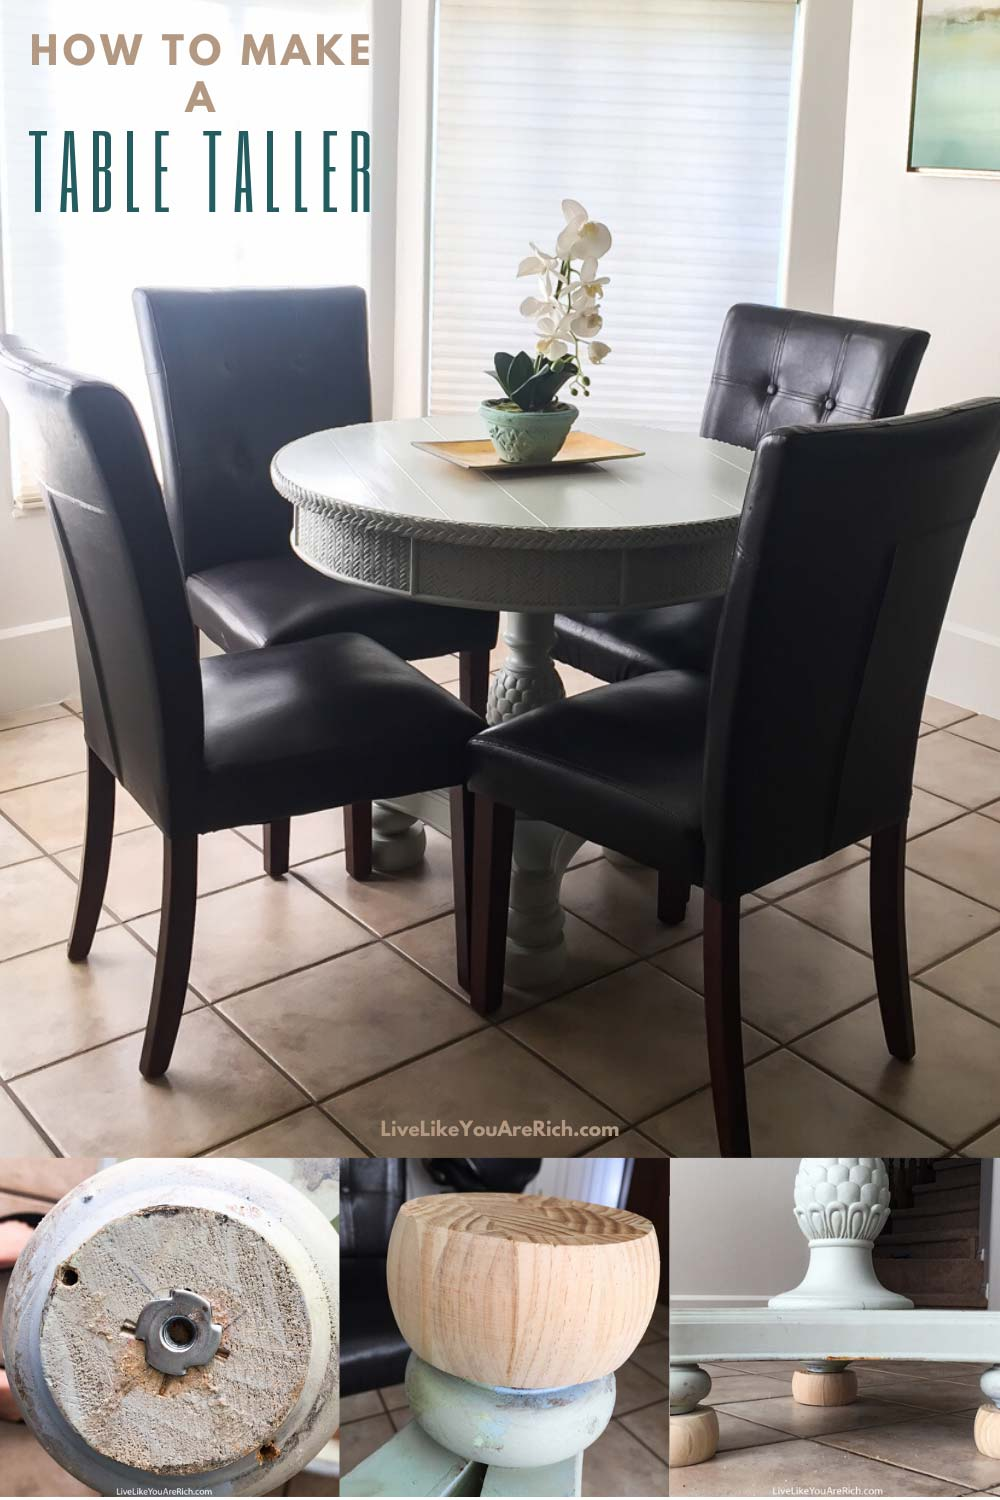 My little table measures just over 30 inches tall and fits my diningchairs perfectly. I have had a guest who is 6'3″ sit at the table comfortably.It has been very functional and was inexpensive, easy, and quick. I hope this is helpful if you need to make a table taller as well! #table #tablemakeover #diy